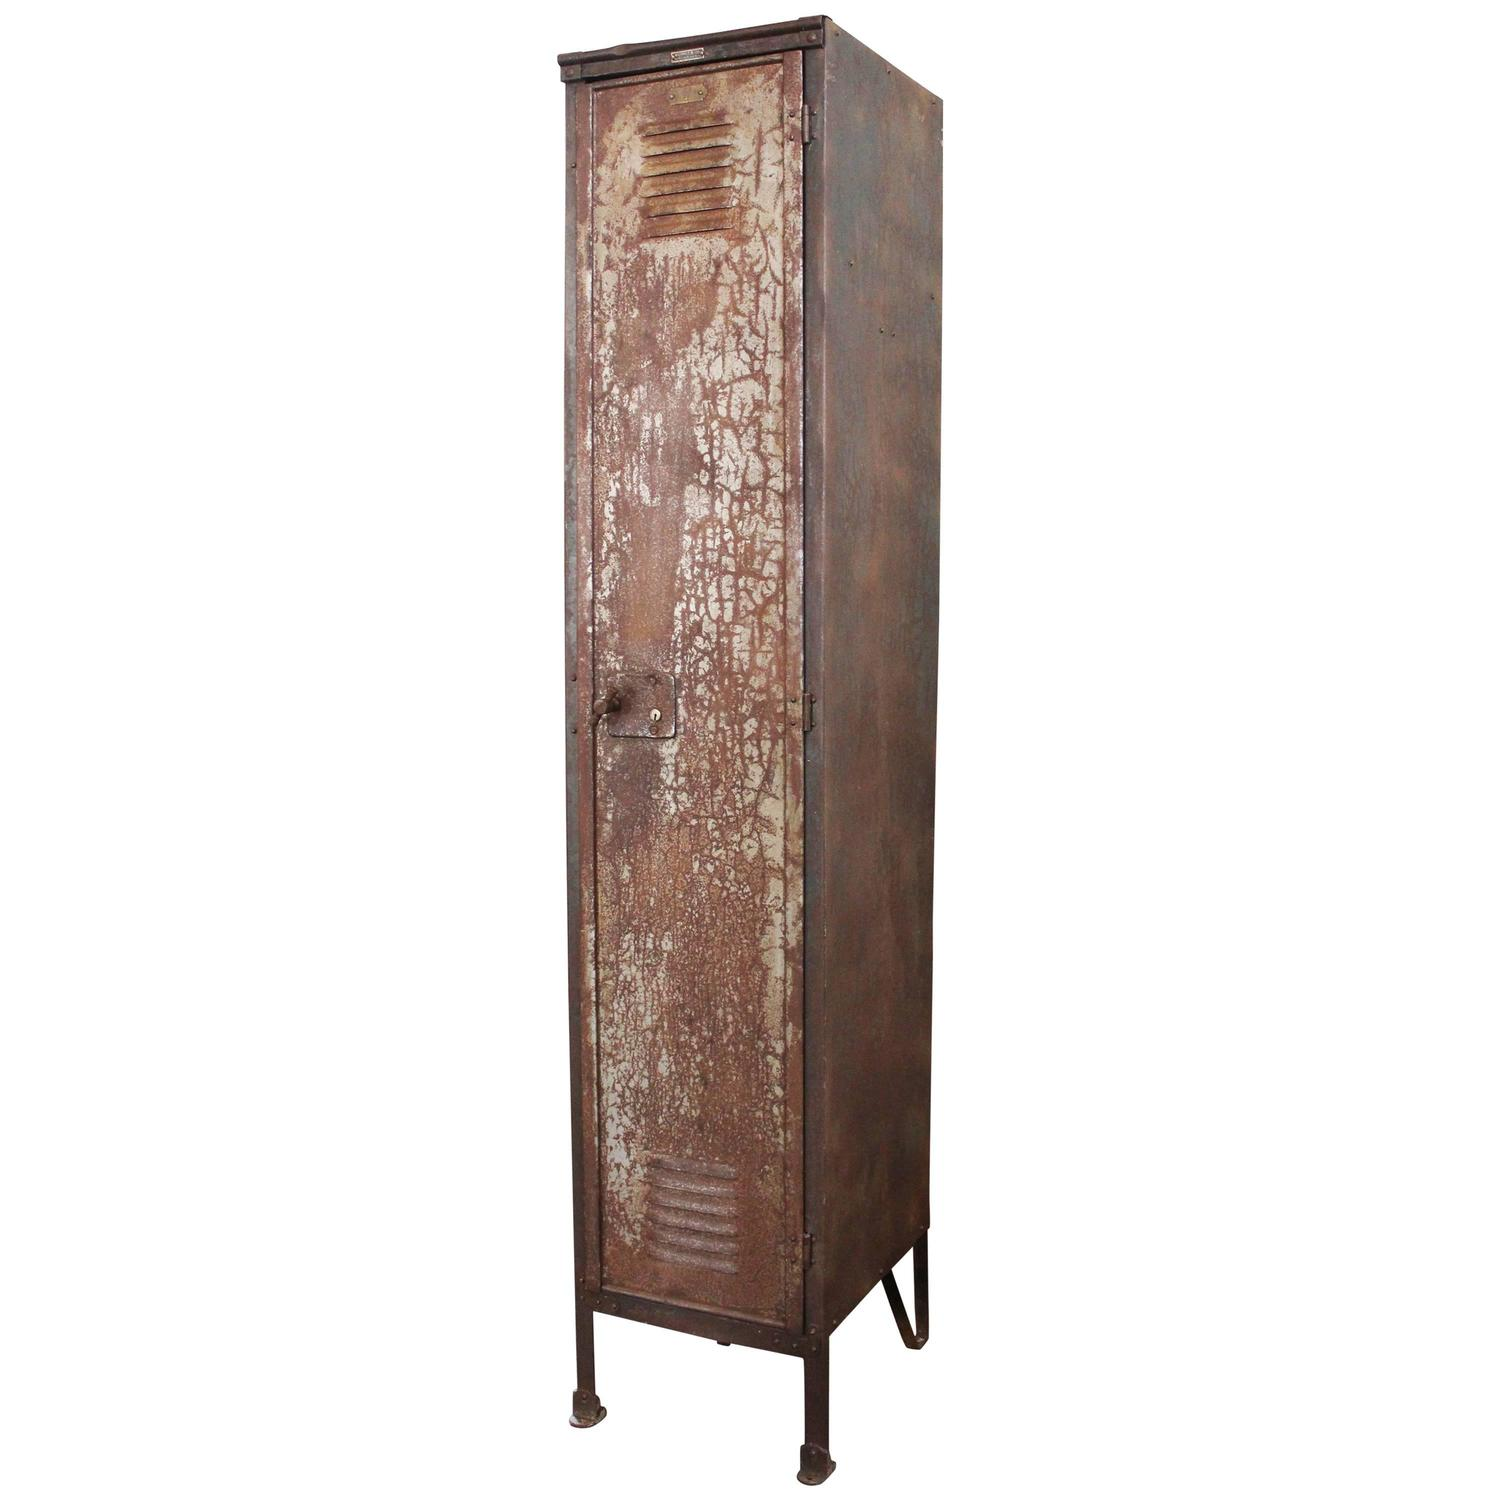 vtg 1940 50s simmons furniture metal medical. Vintage Industrial Factory Metal Locker, Old Steel Storage Brass Plate For Sale At 1stdibs Vtg 1940 50s Simmons Furniture Medical